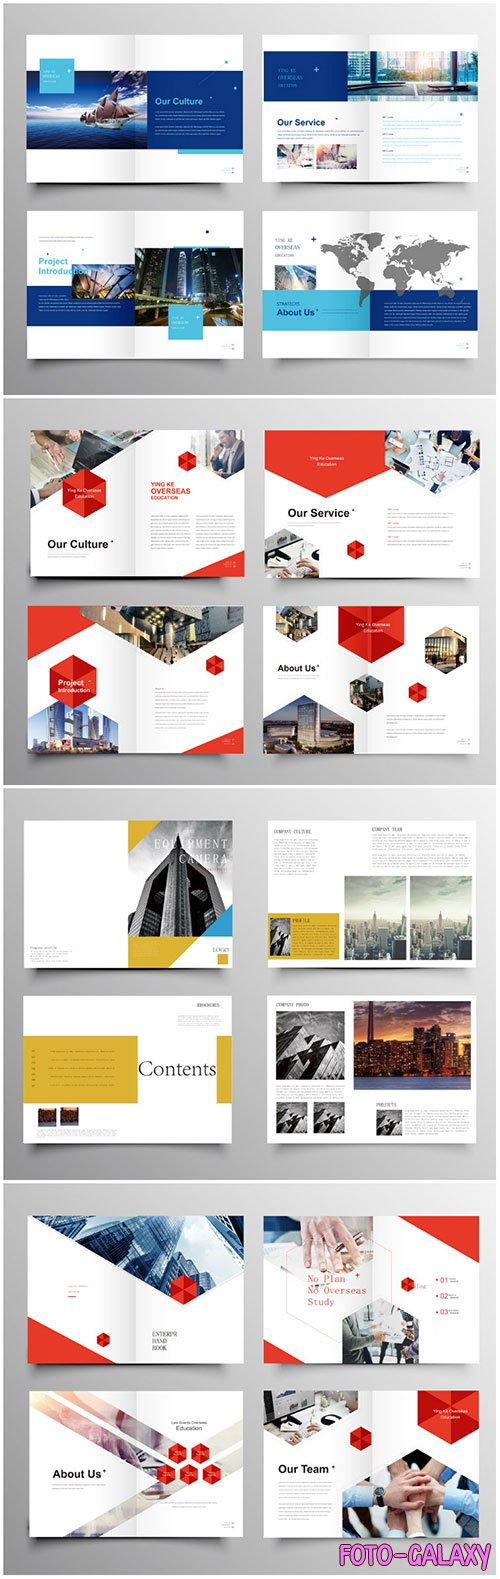 Brochure template vector layout design, corporate business annual report, magazine, flyer mockup # 231